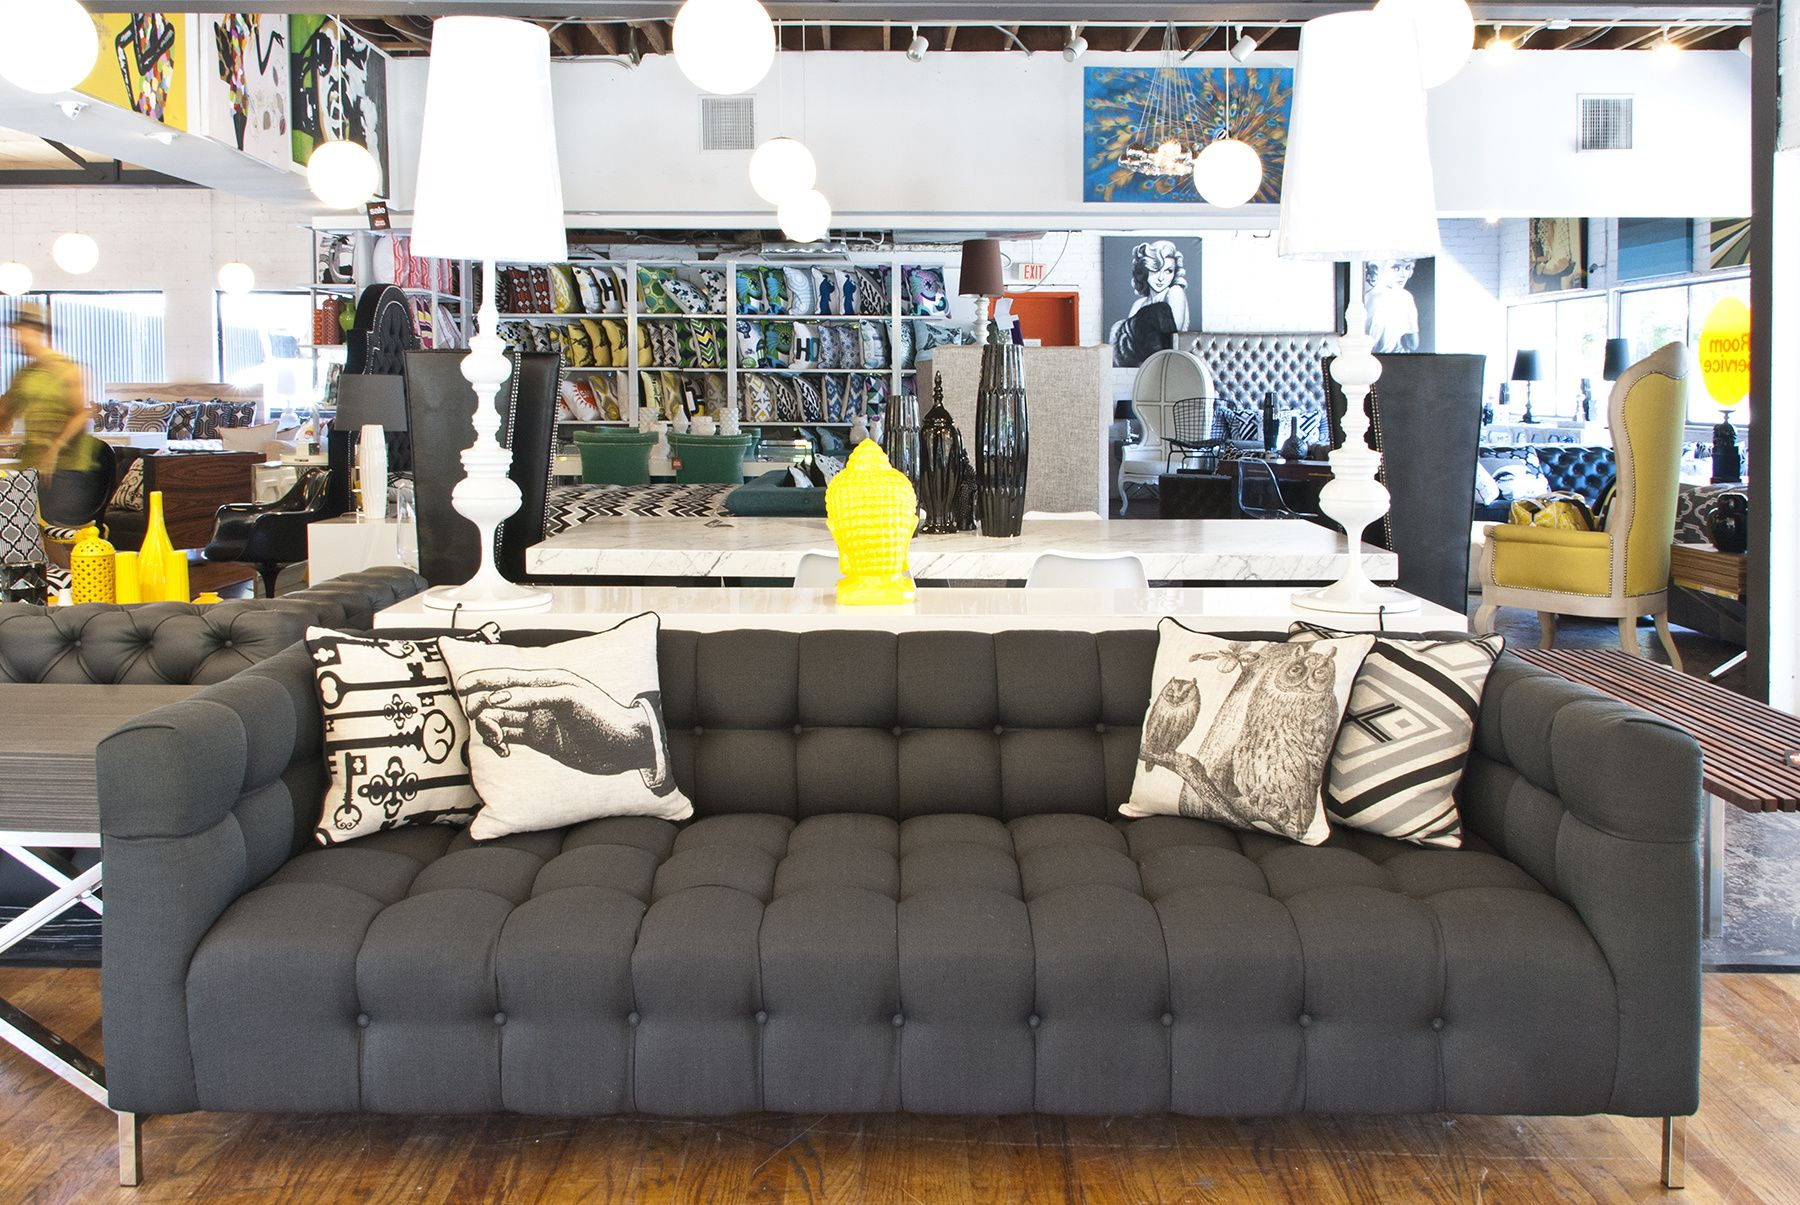 Beau Good Furniture Stores In Los Angeles   Best Master Furniture Check More At  Http:/